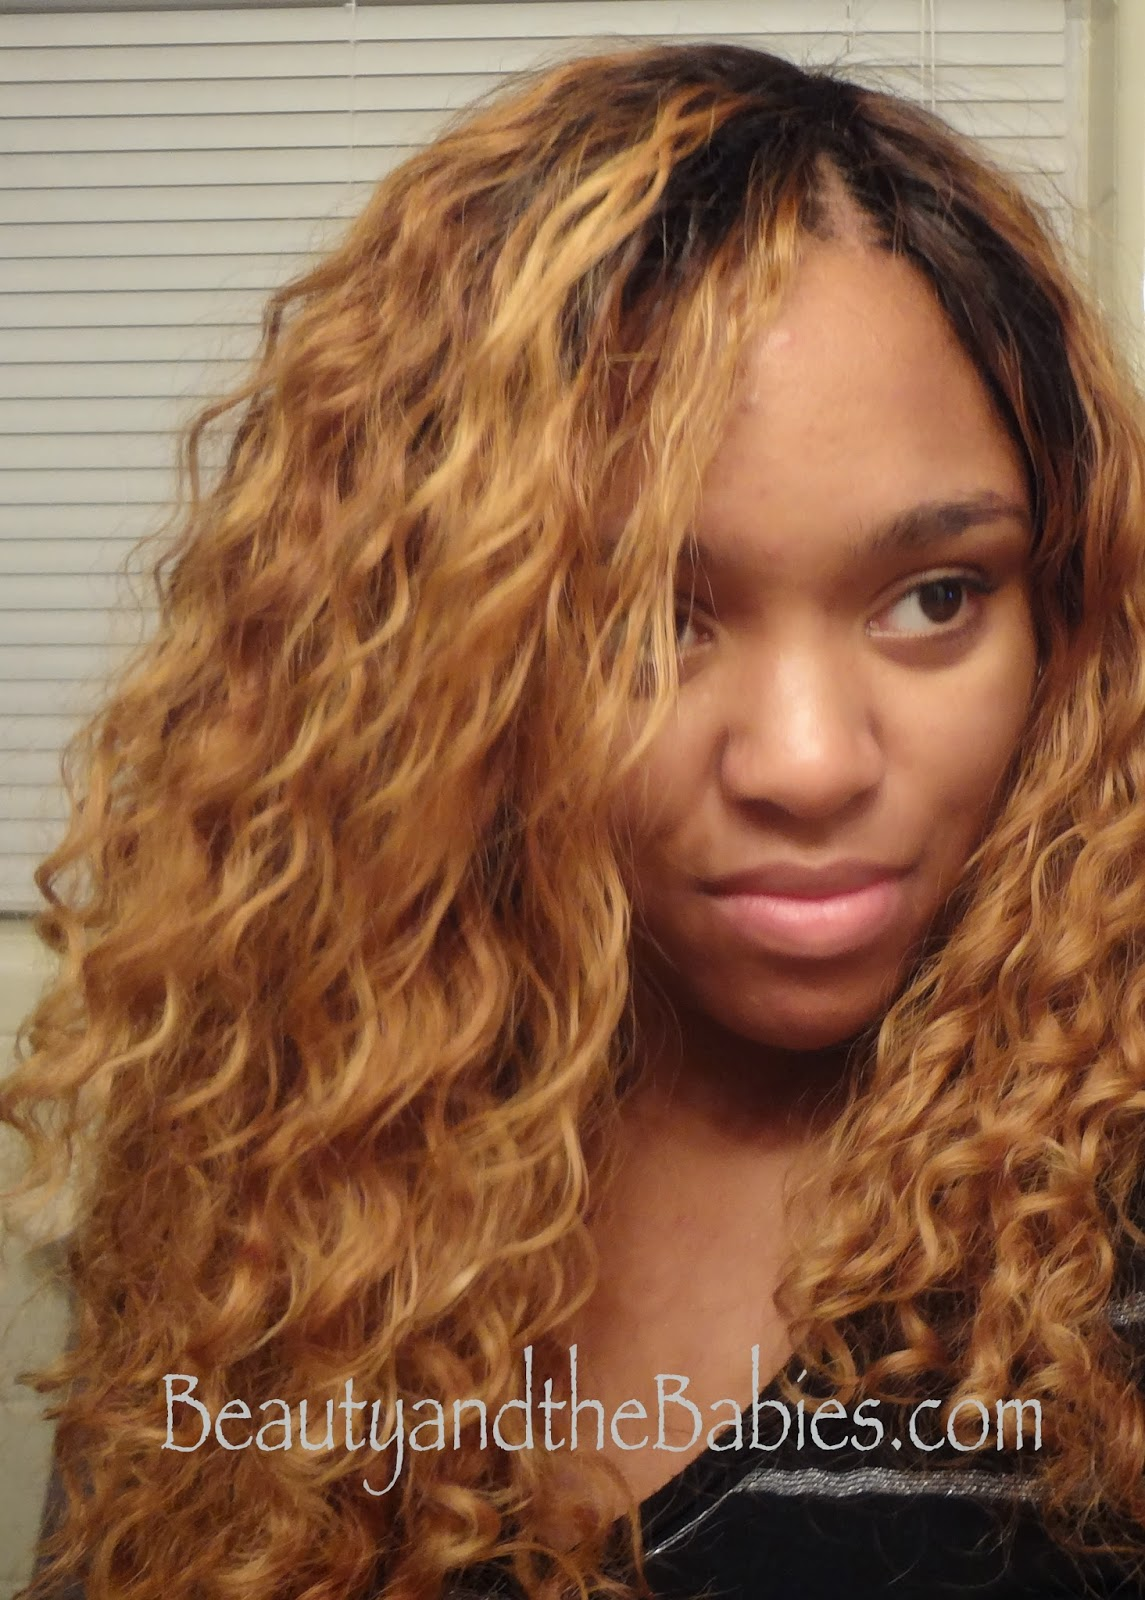 Tree Braids With Body Wave Hair For - beyonce tree braids.